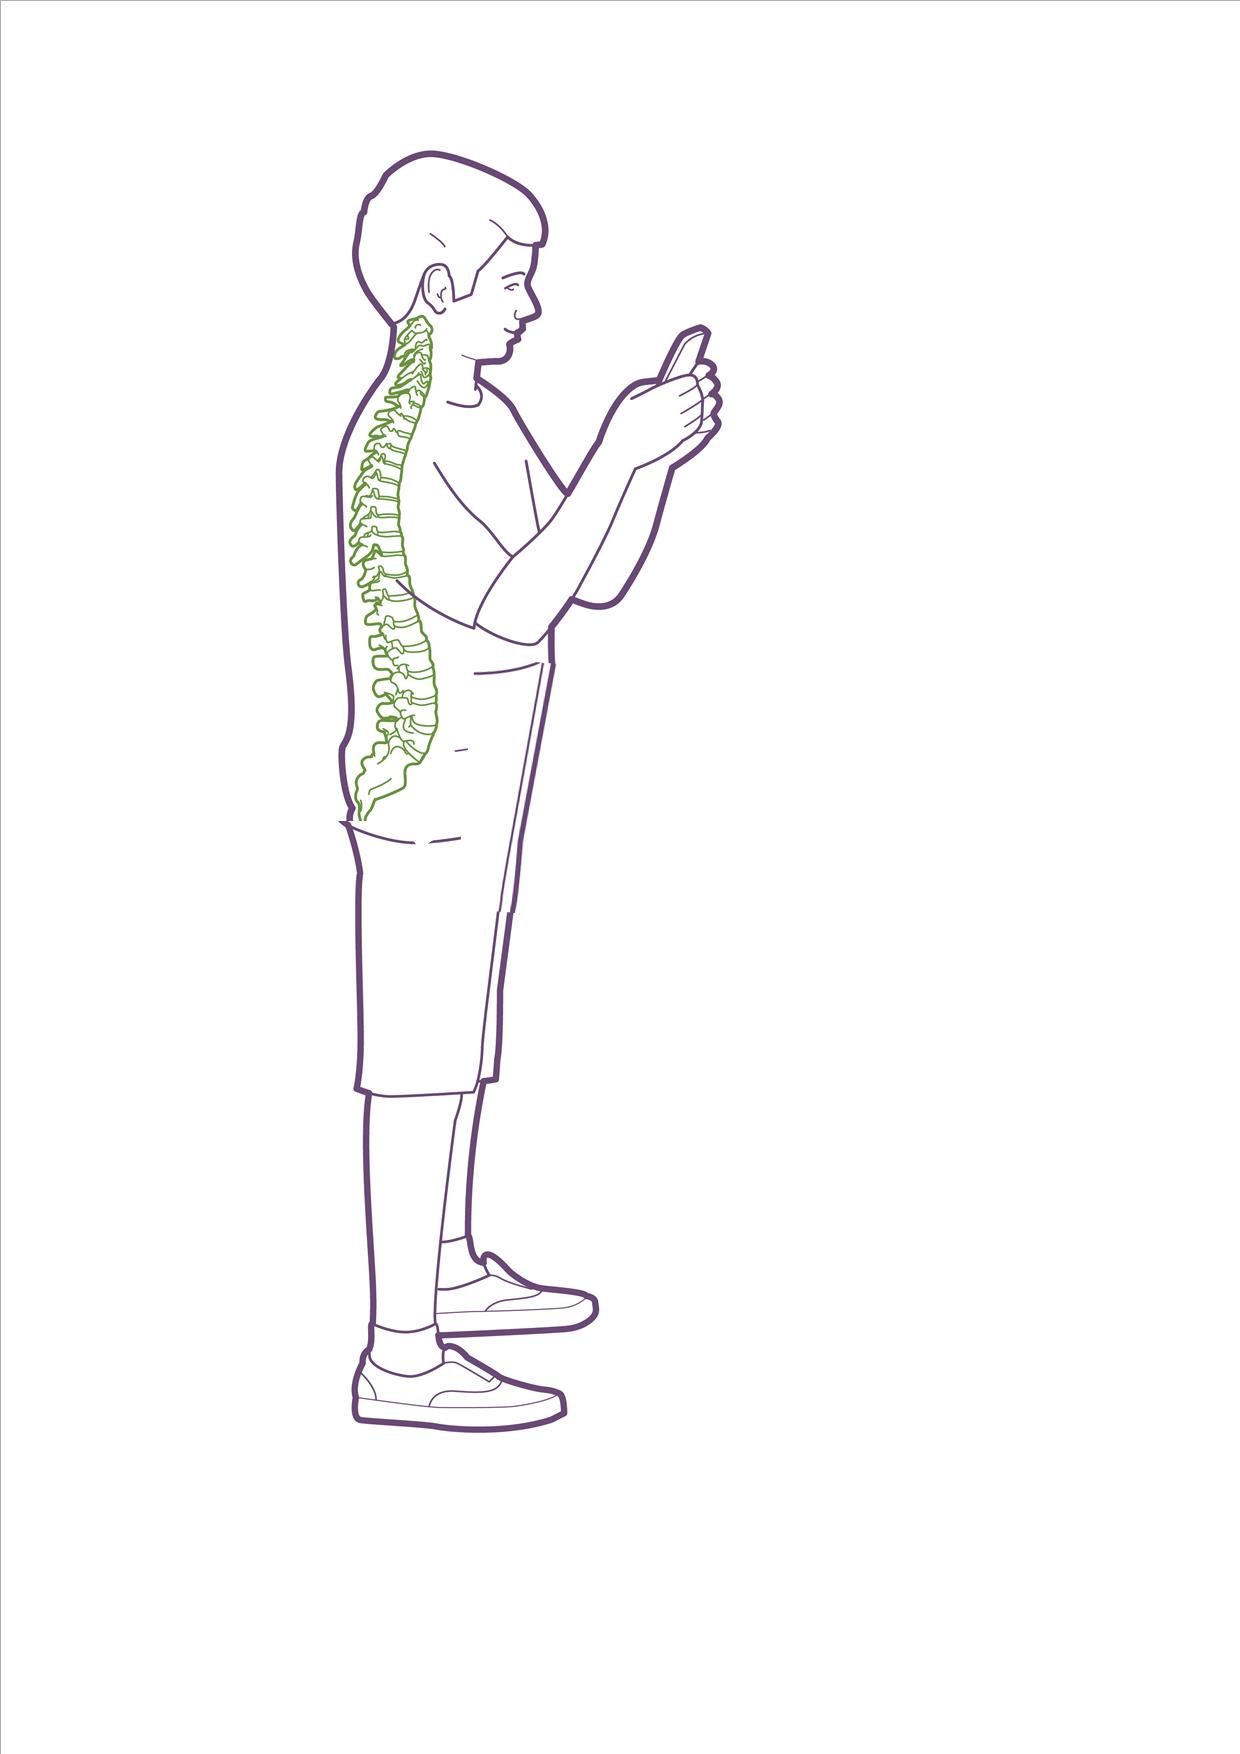 standing good phone use  elbopws in spine in green 18 07 2016.jpg